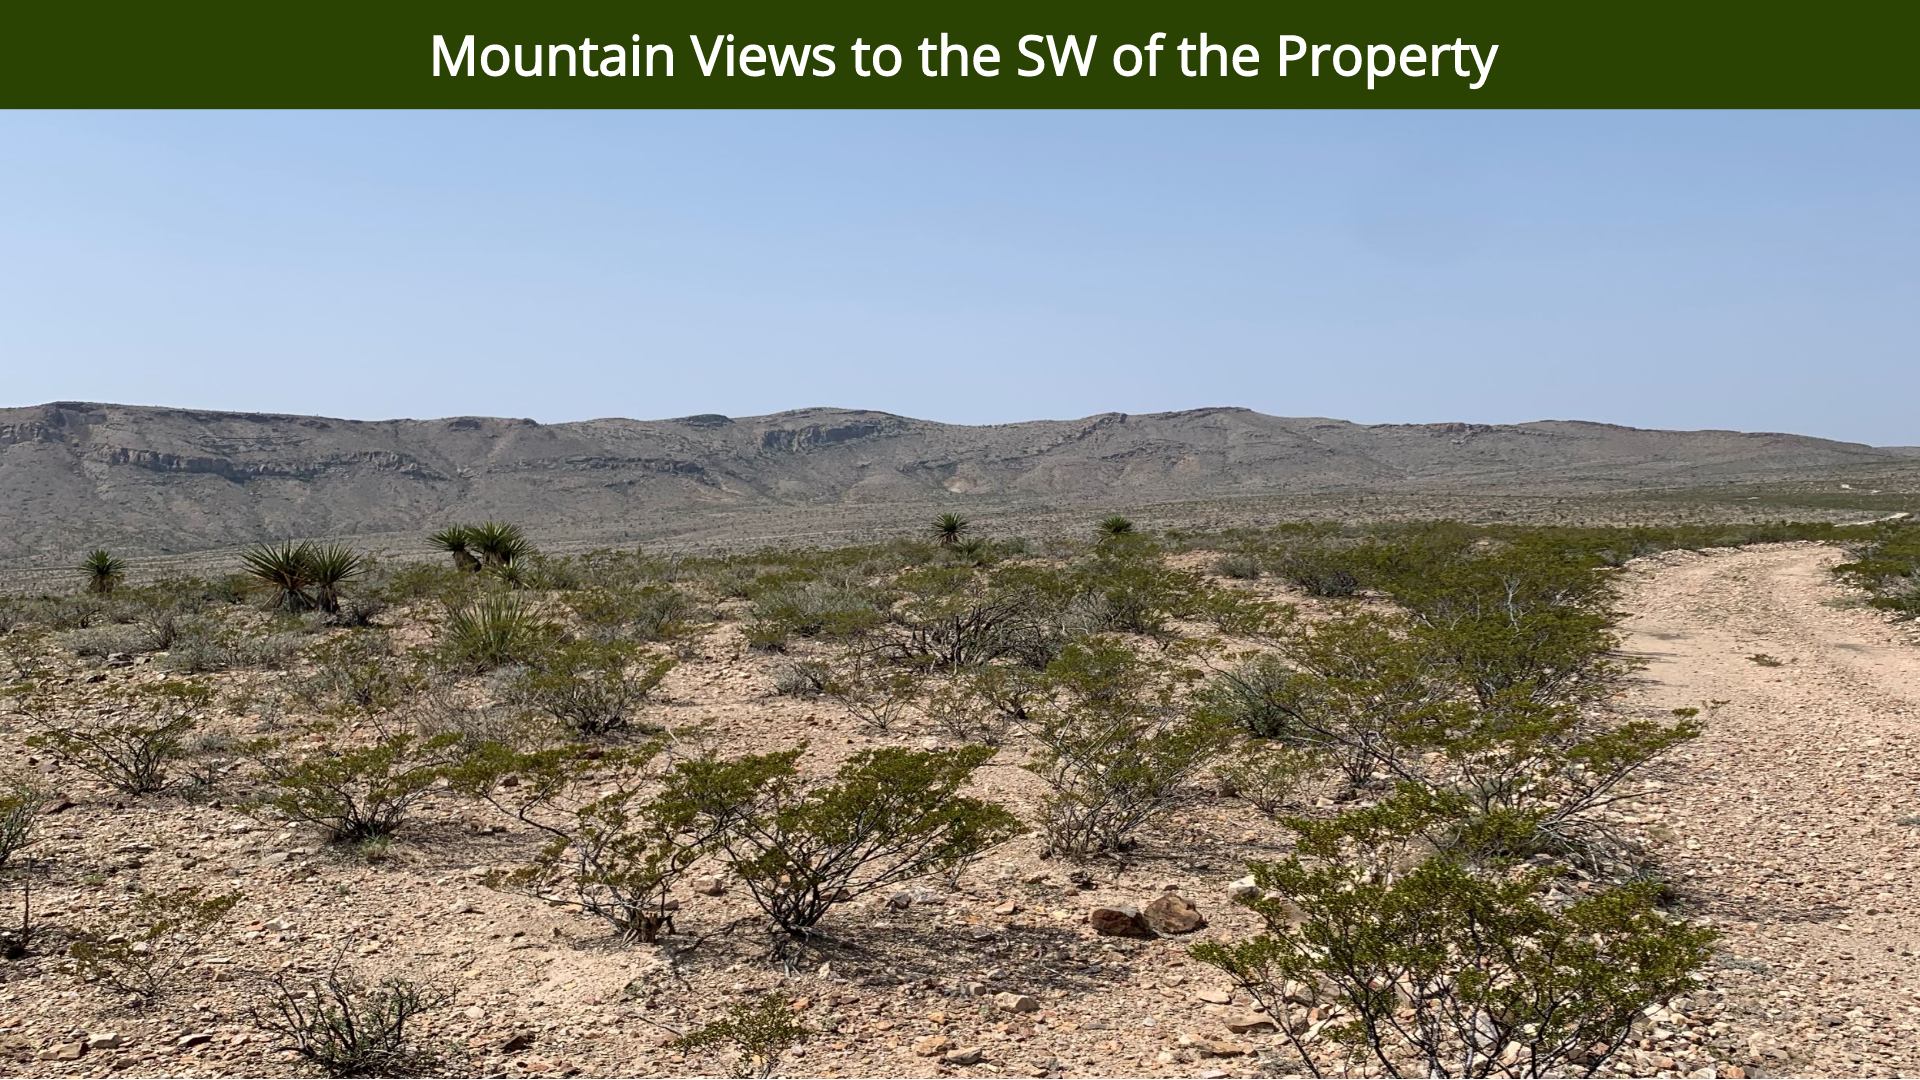 Mountain Views to the SW of the Property